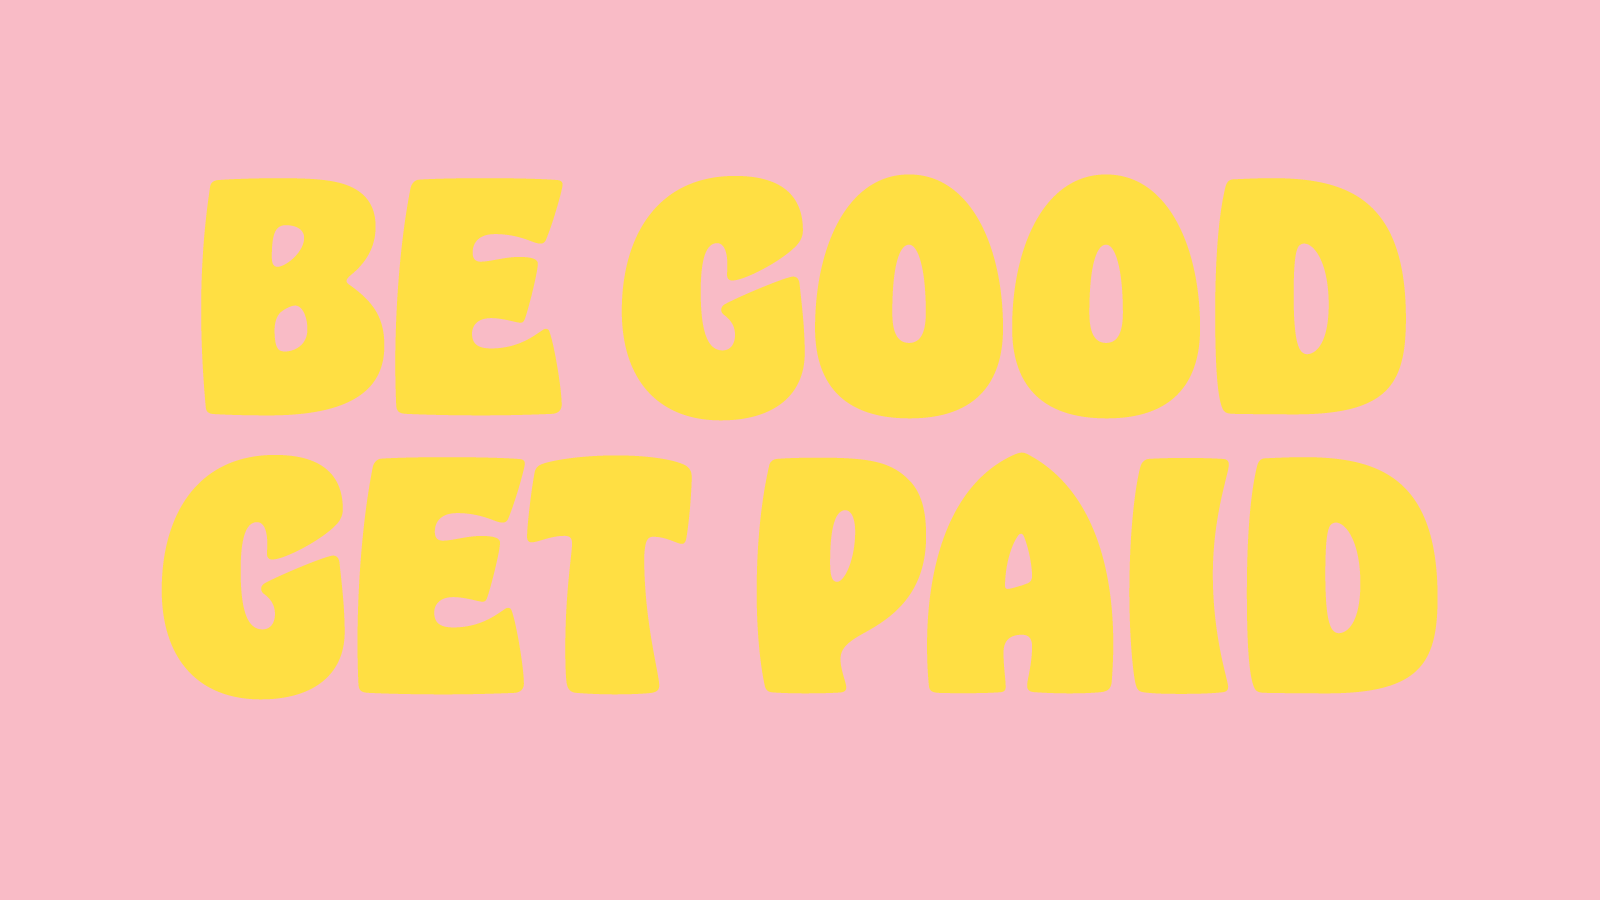 BE-GOOD-GET-PAID.png